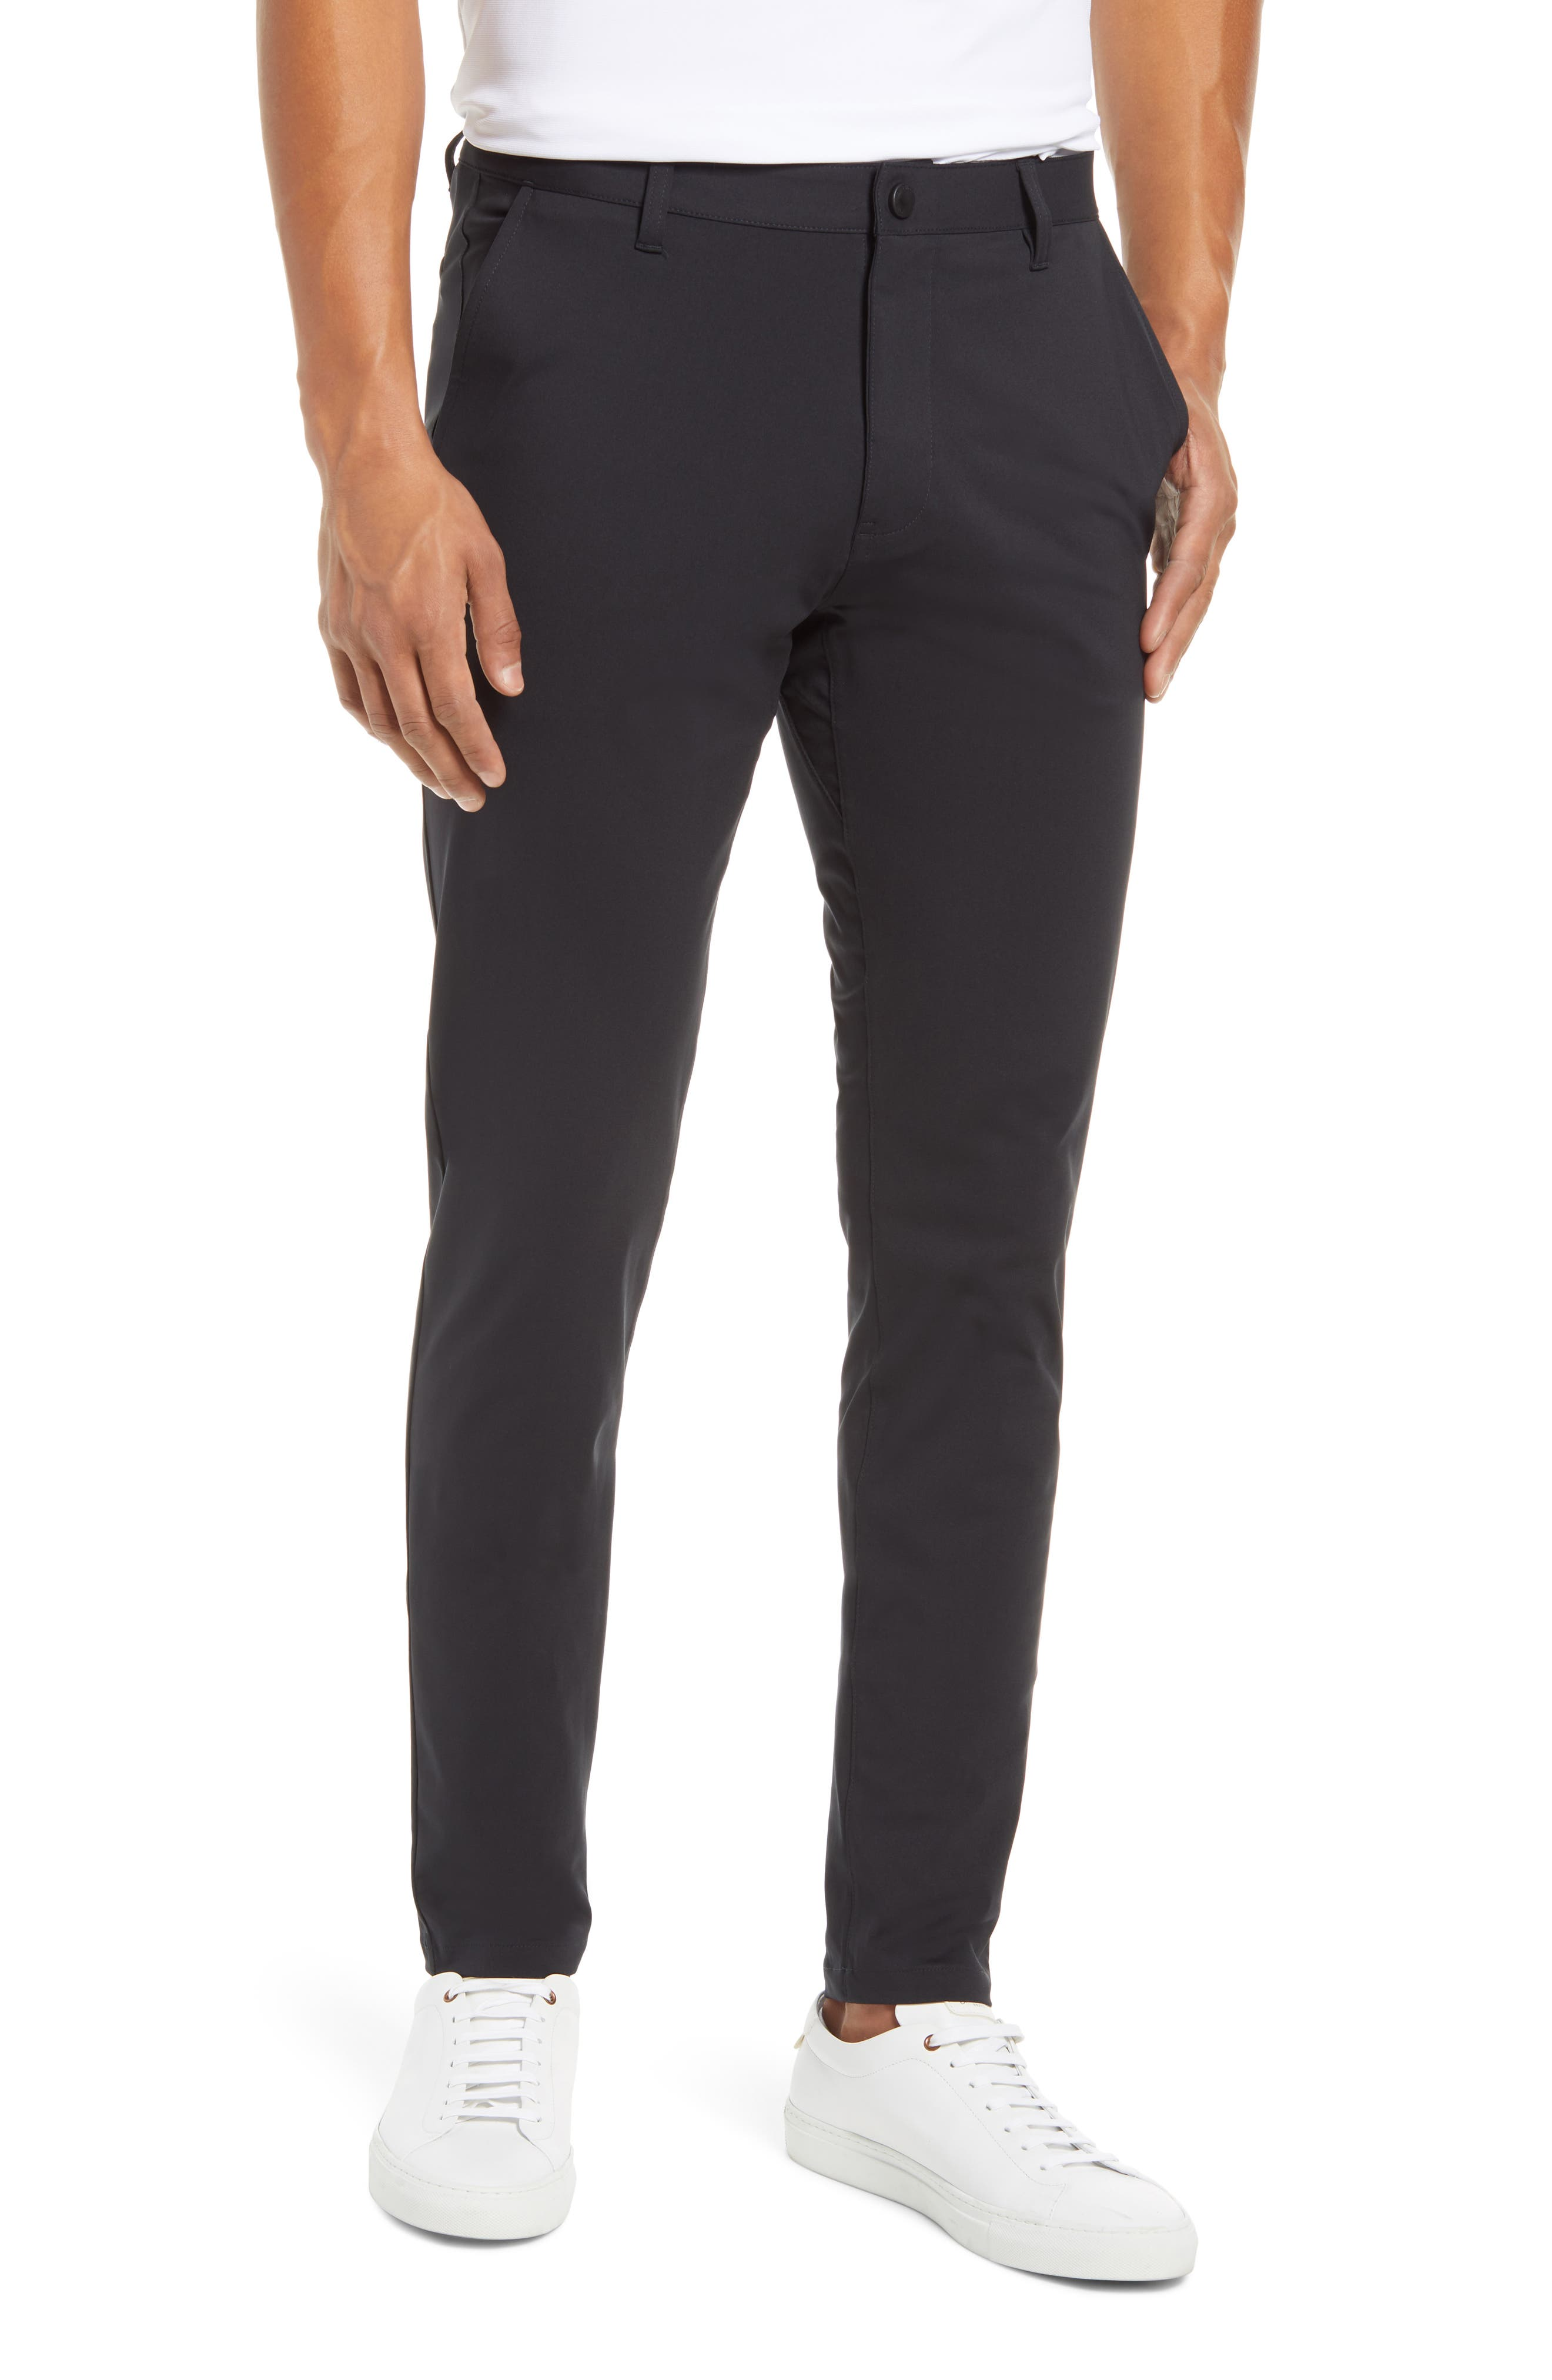 A flat front and modern, skinny fit take you anywhere in comfortable four-way-stretch pants fitted with secure hidden pockets for your phone, currency or tunes. Style Name: Rhone Commuter Skinny Fit Men\\\'s Pants. Style Number: 6095345. Available in stores.